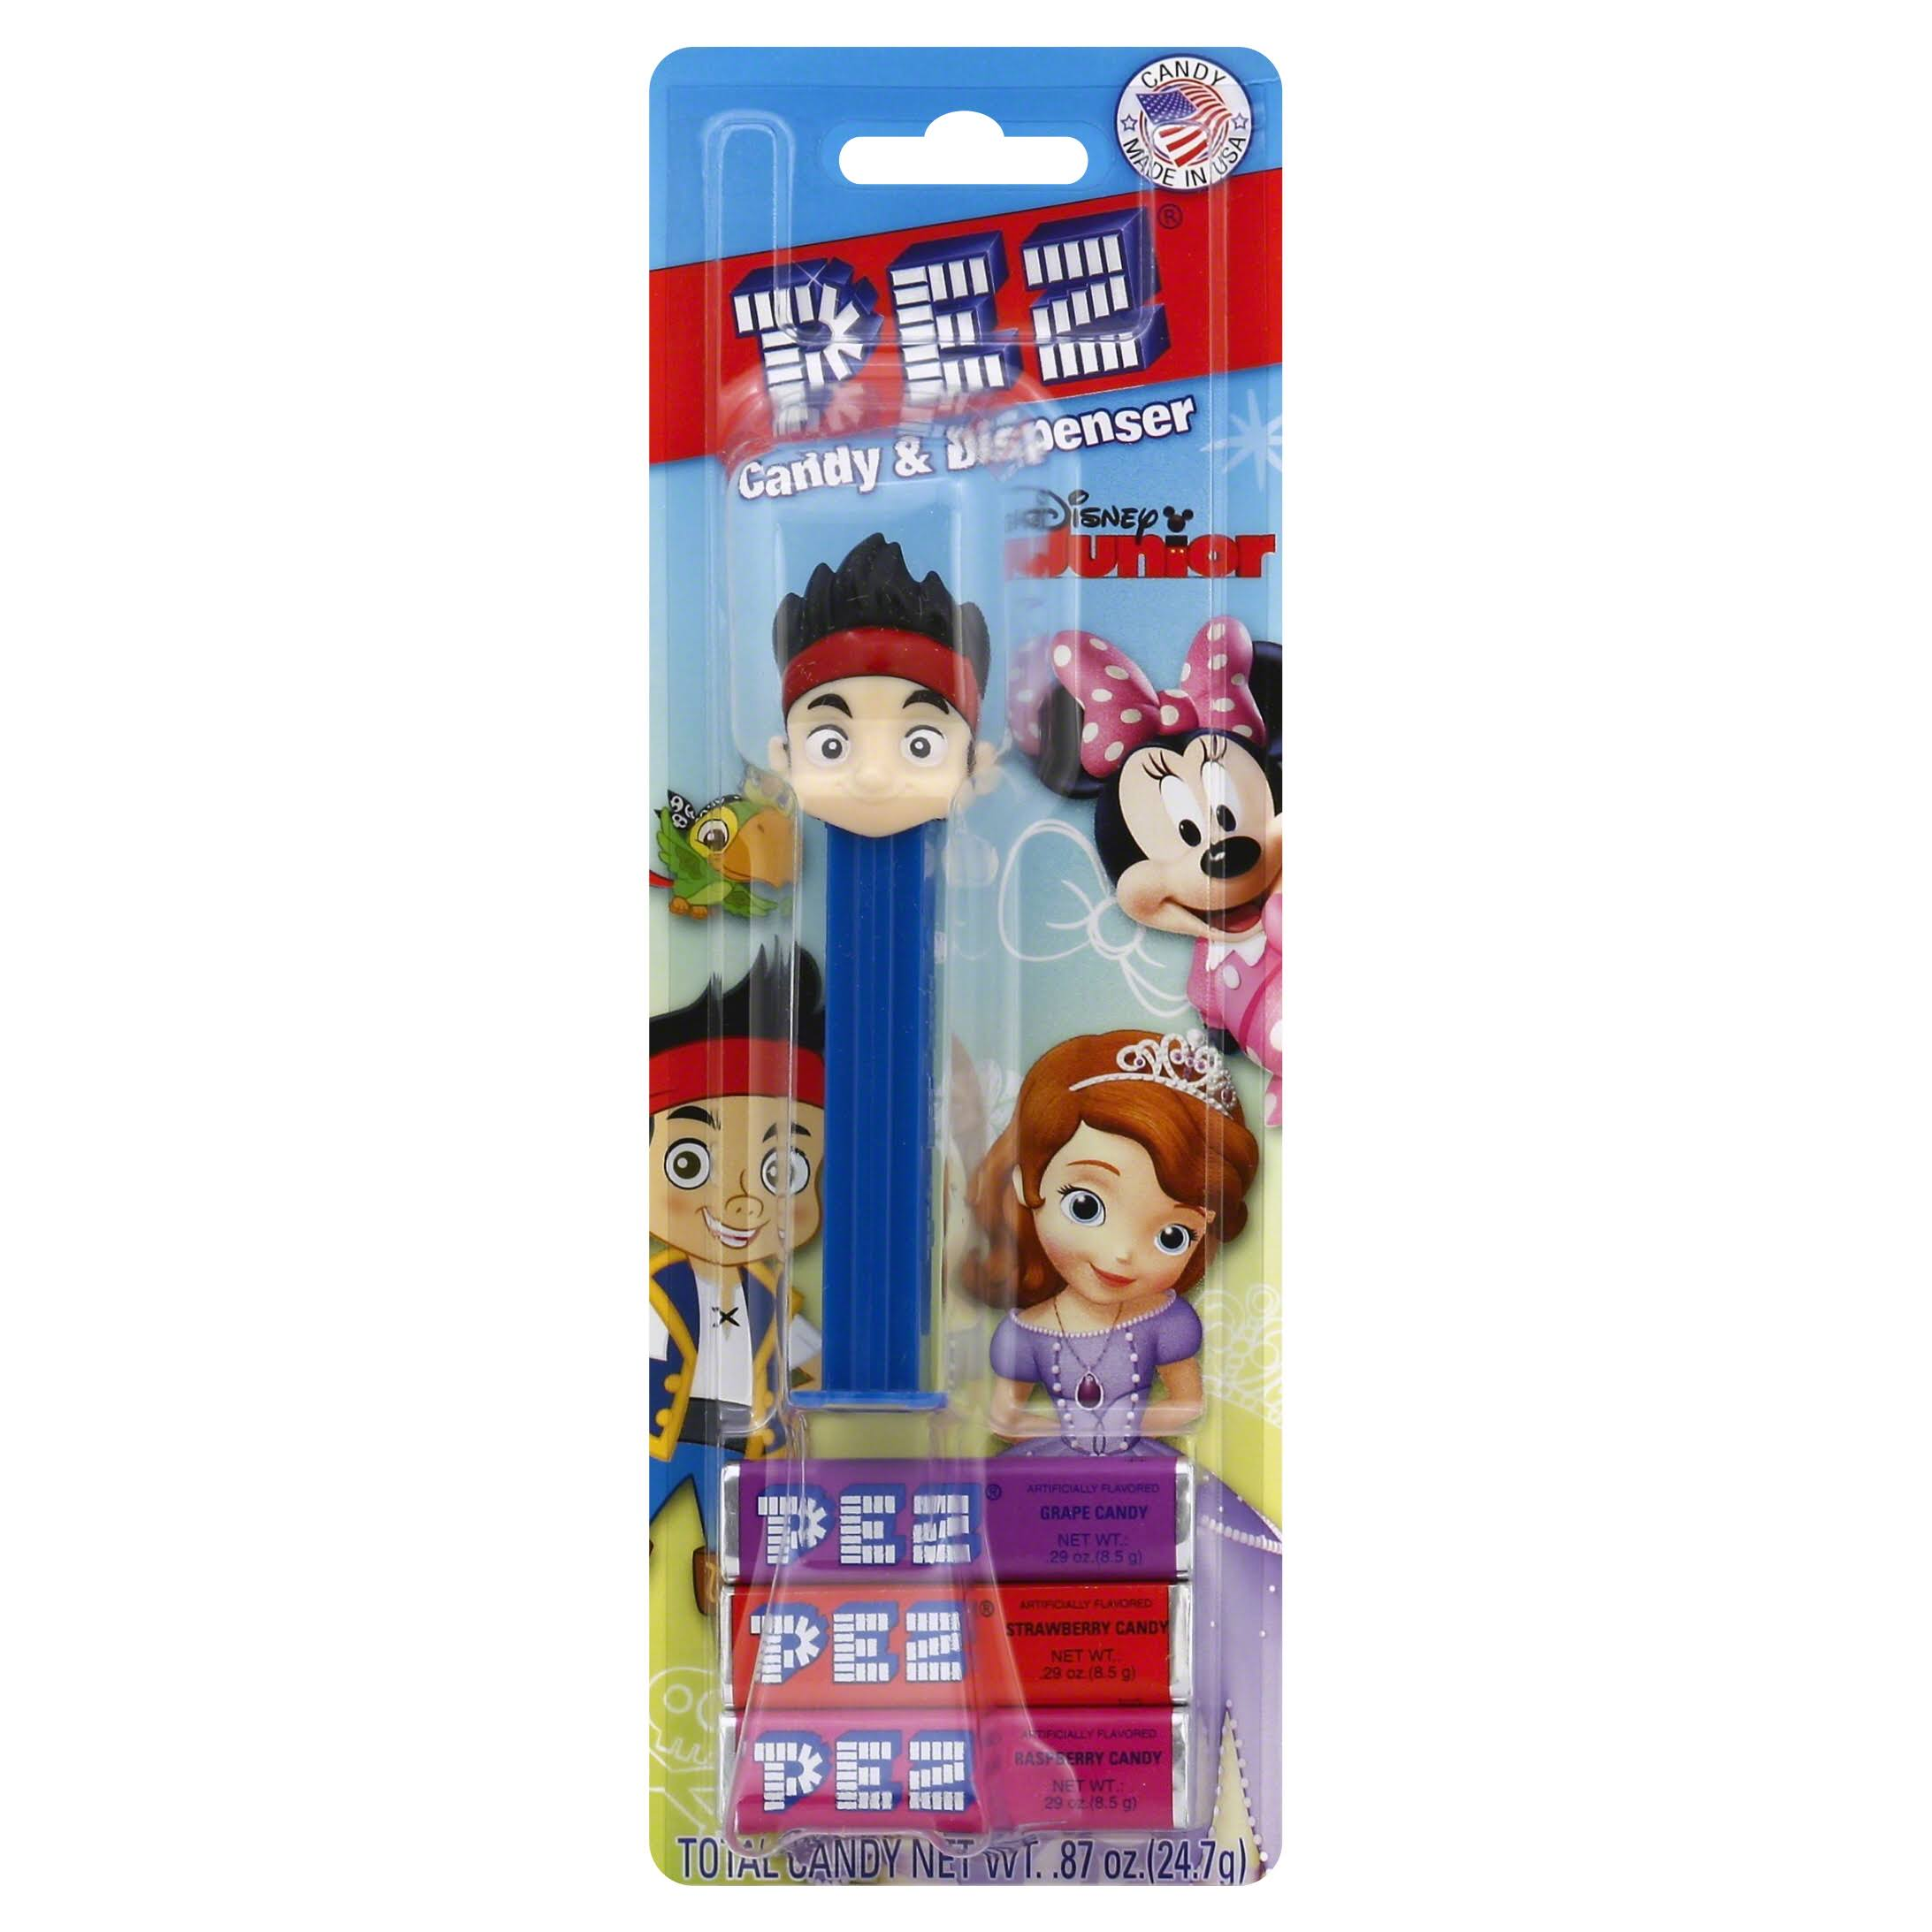 Pez Disney Junior Candy & Dispenser